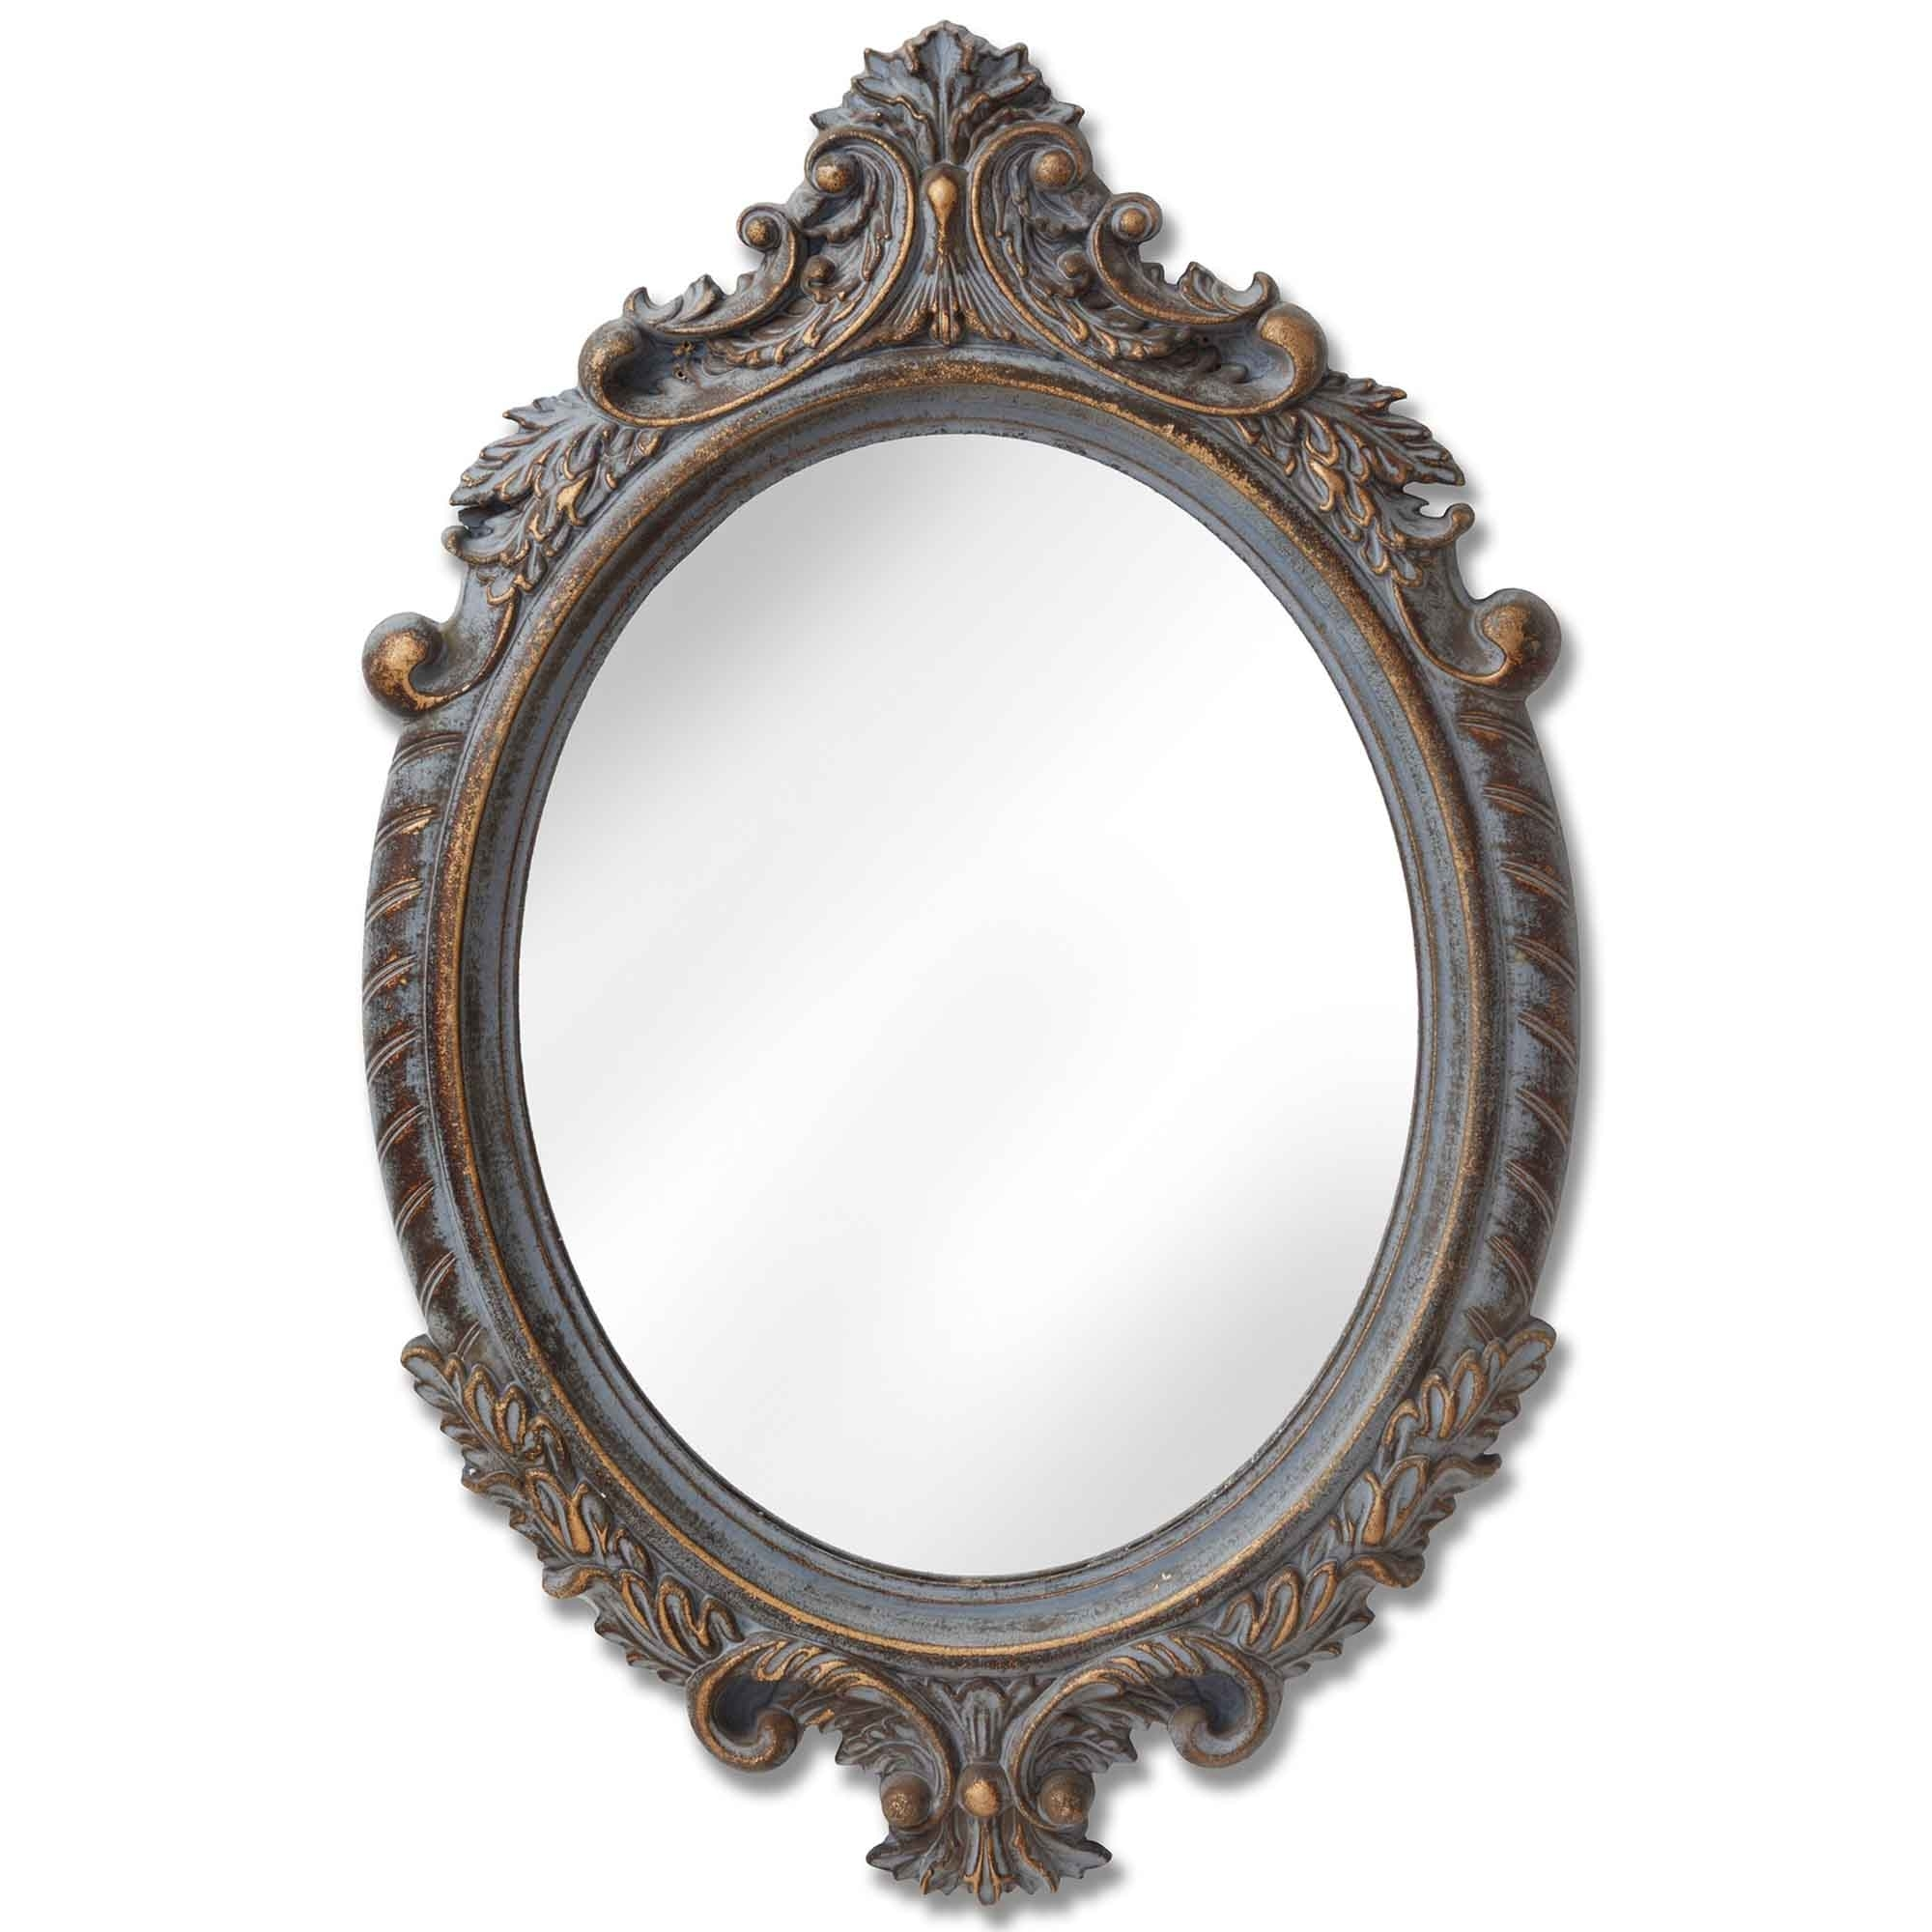 Mirrors Small: Small Antique French Style Oval Mirror